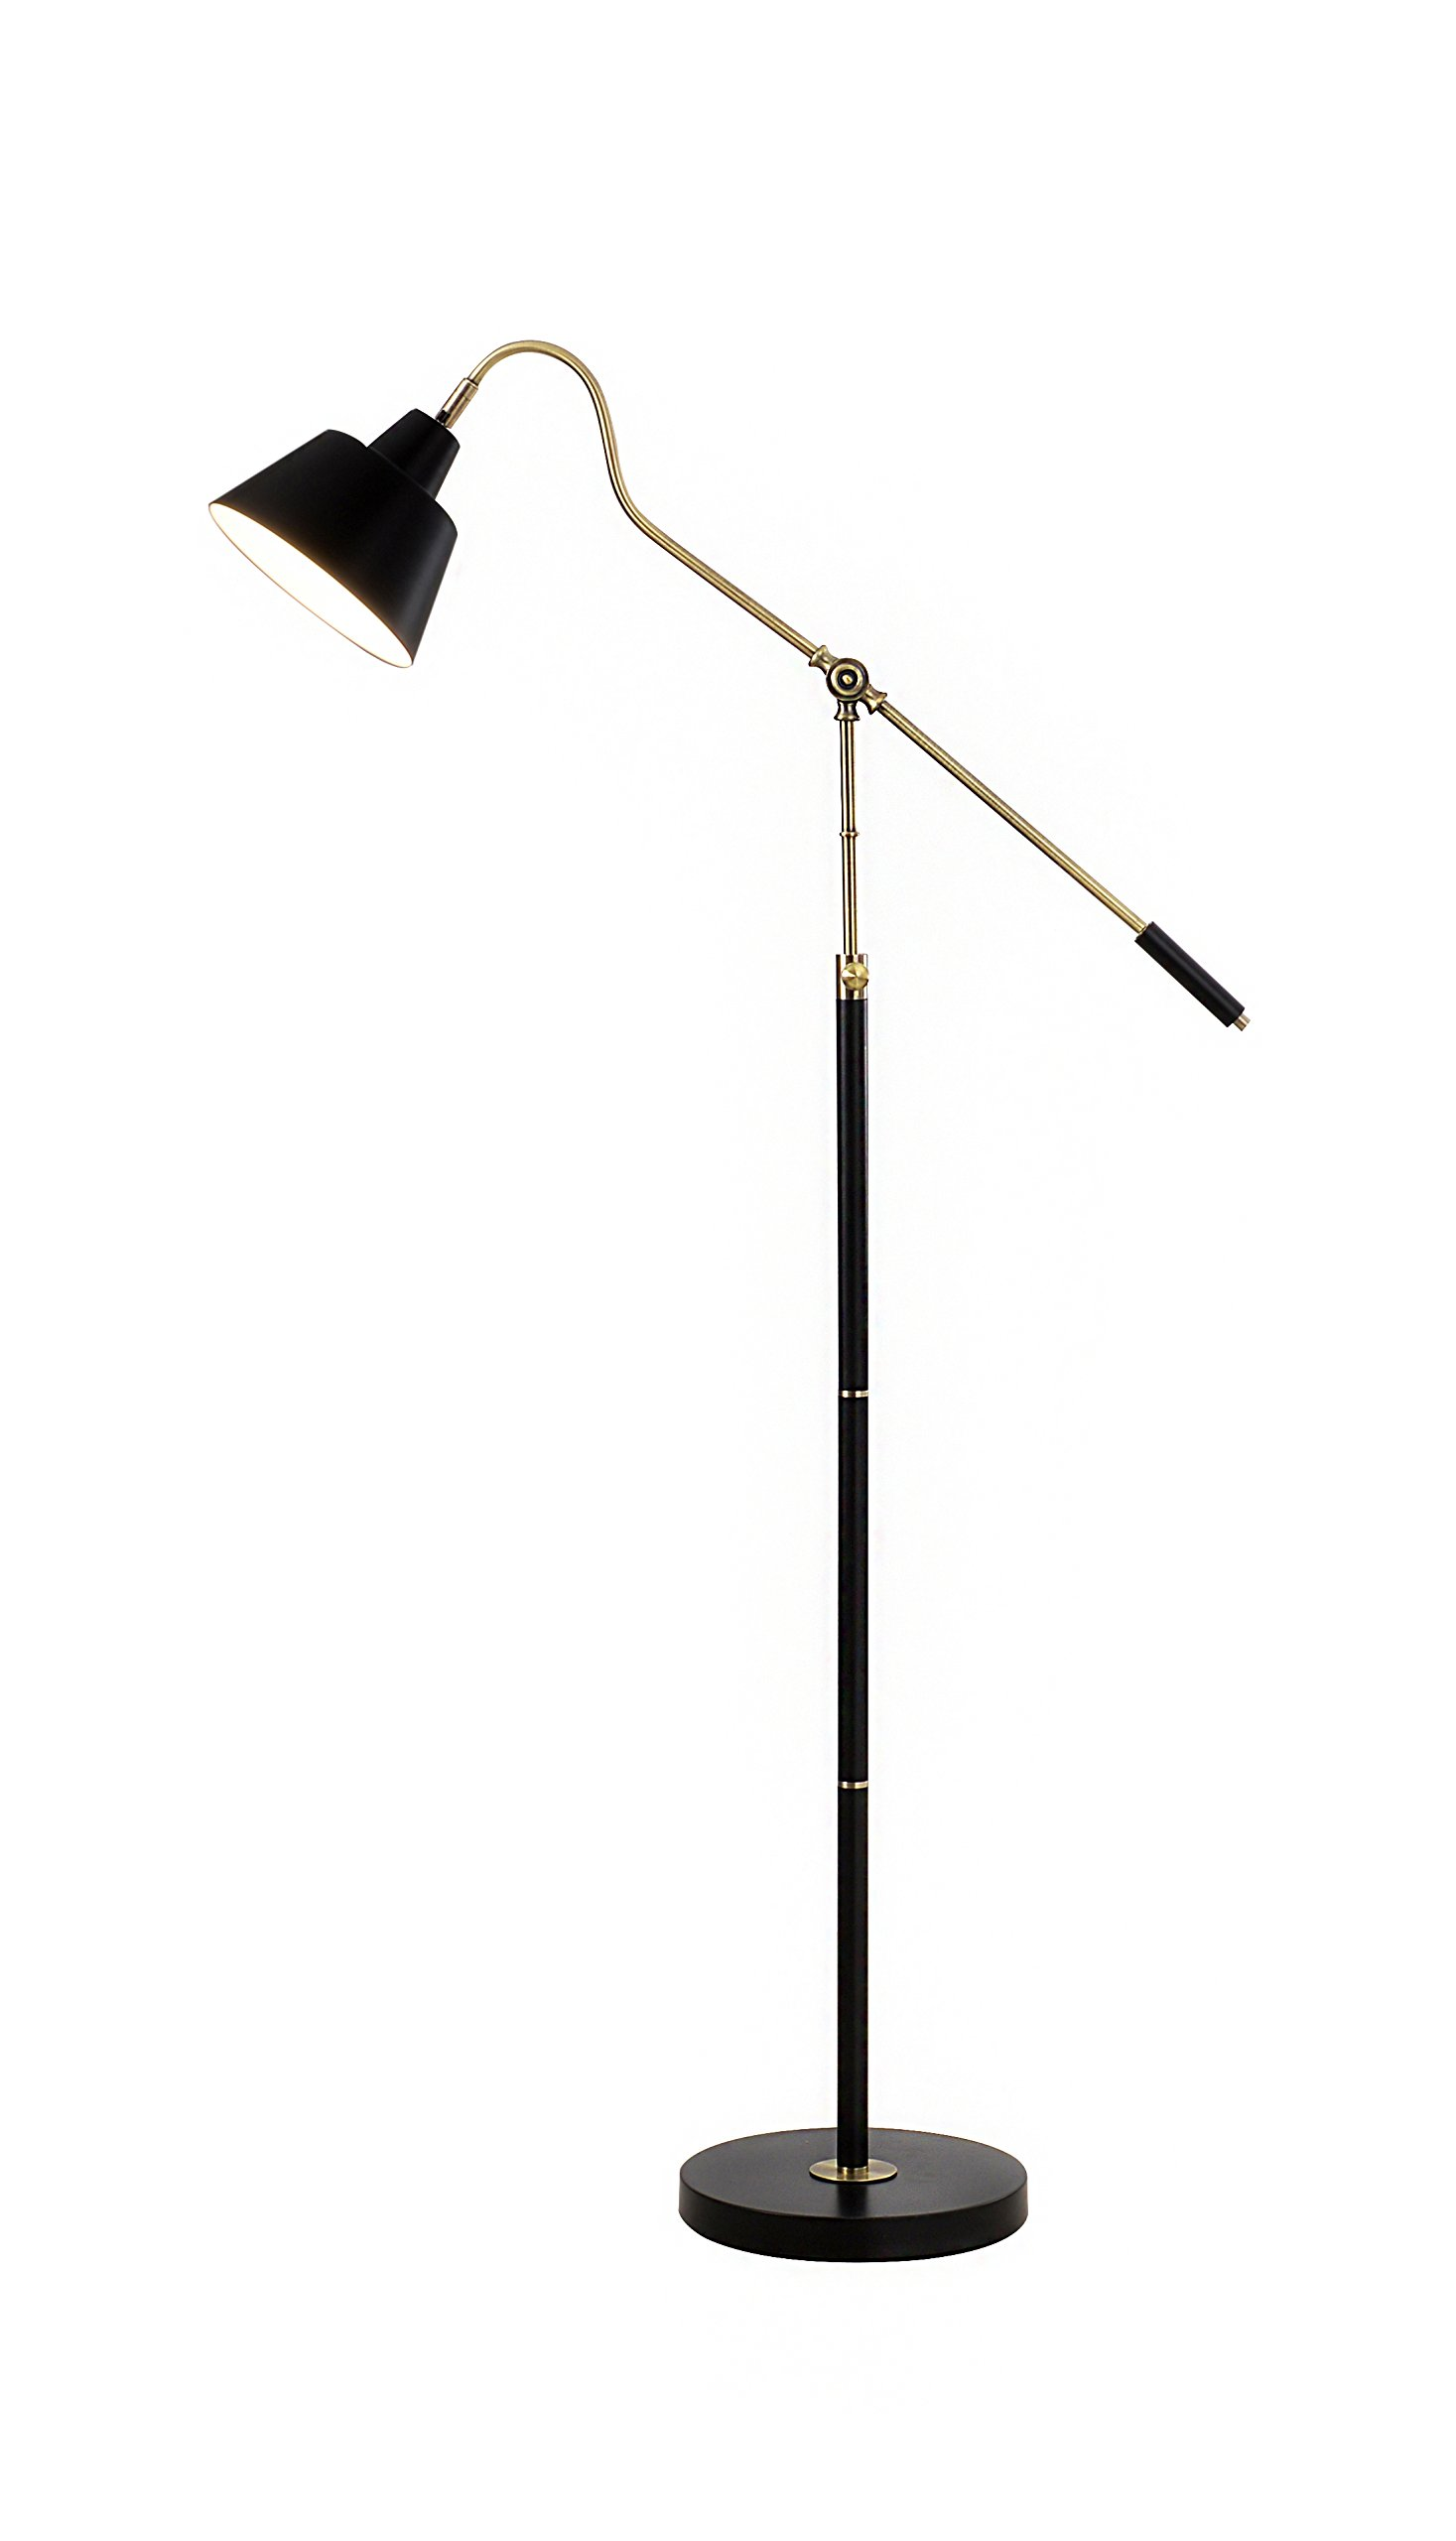 Catalina 19945-001 Nelson 60.25-Inch Adjustable Antique Brass and Matte Black Metal Floor Lamp, Bulb Included